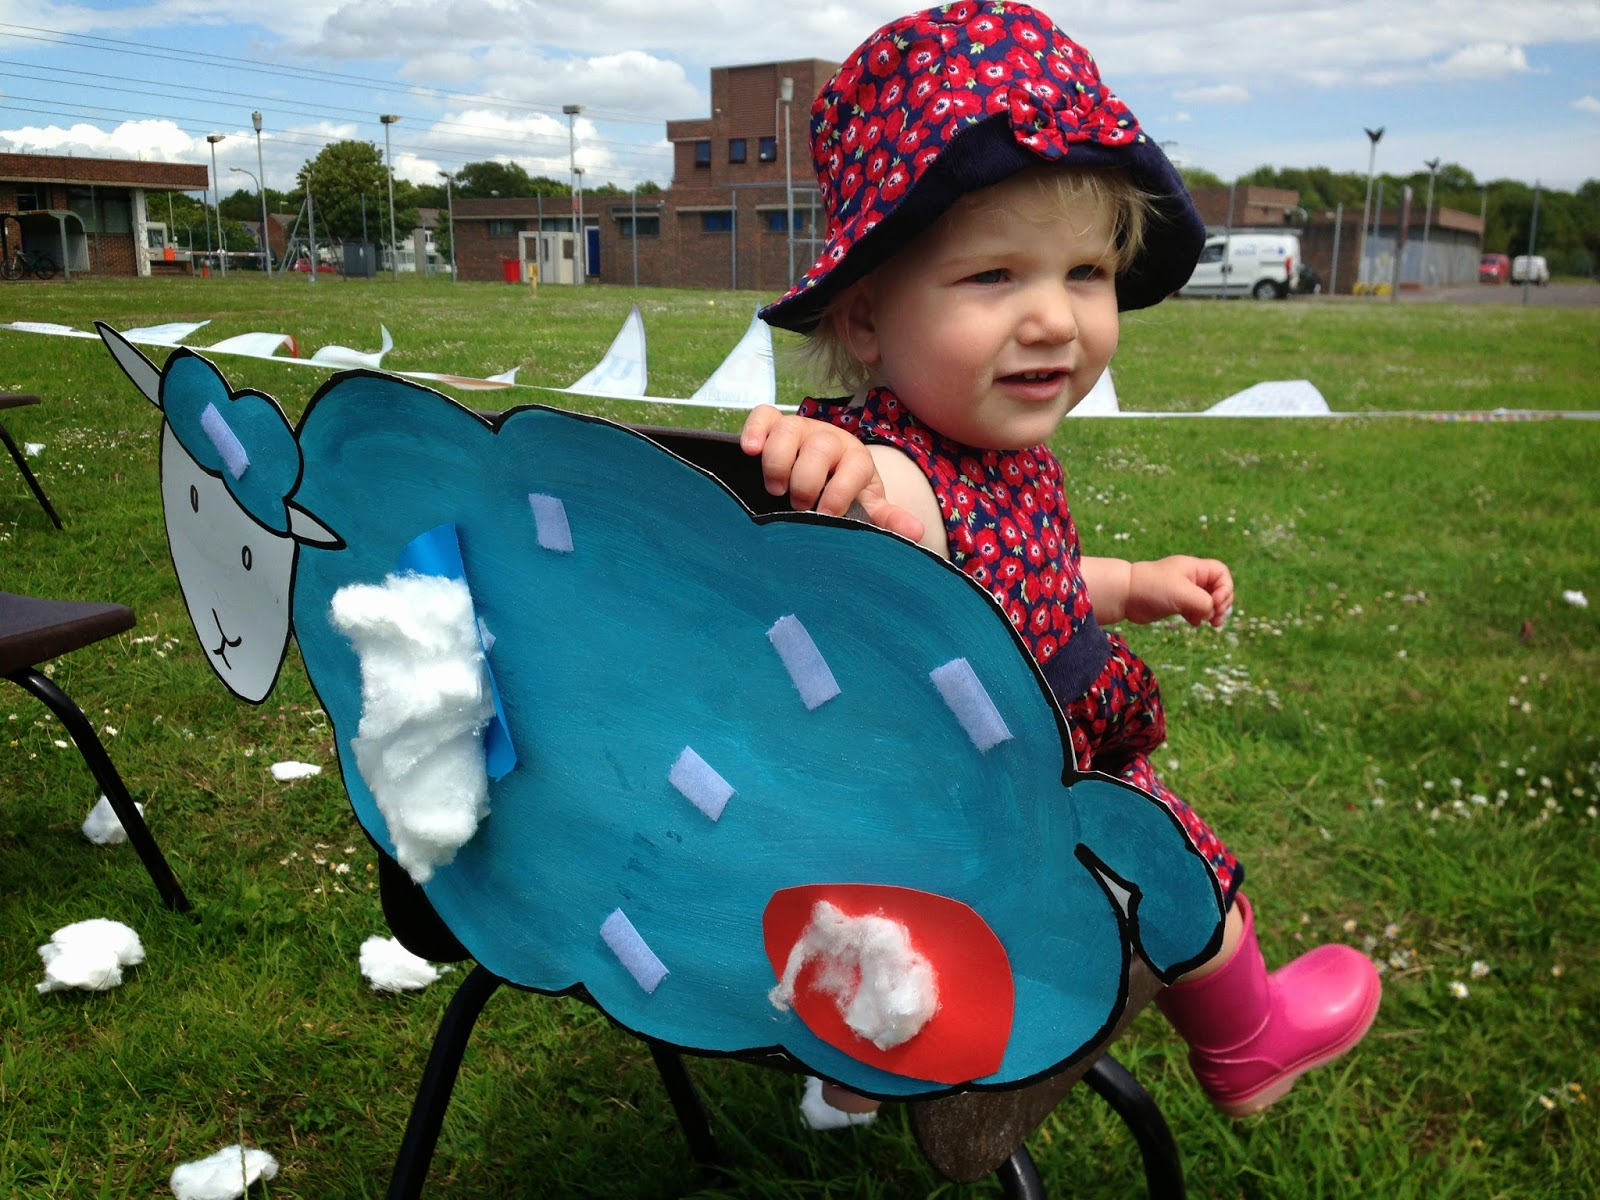 Tin Box Tot having fun at the sponsored toddle